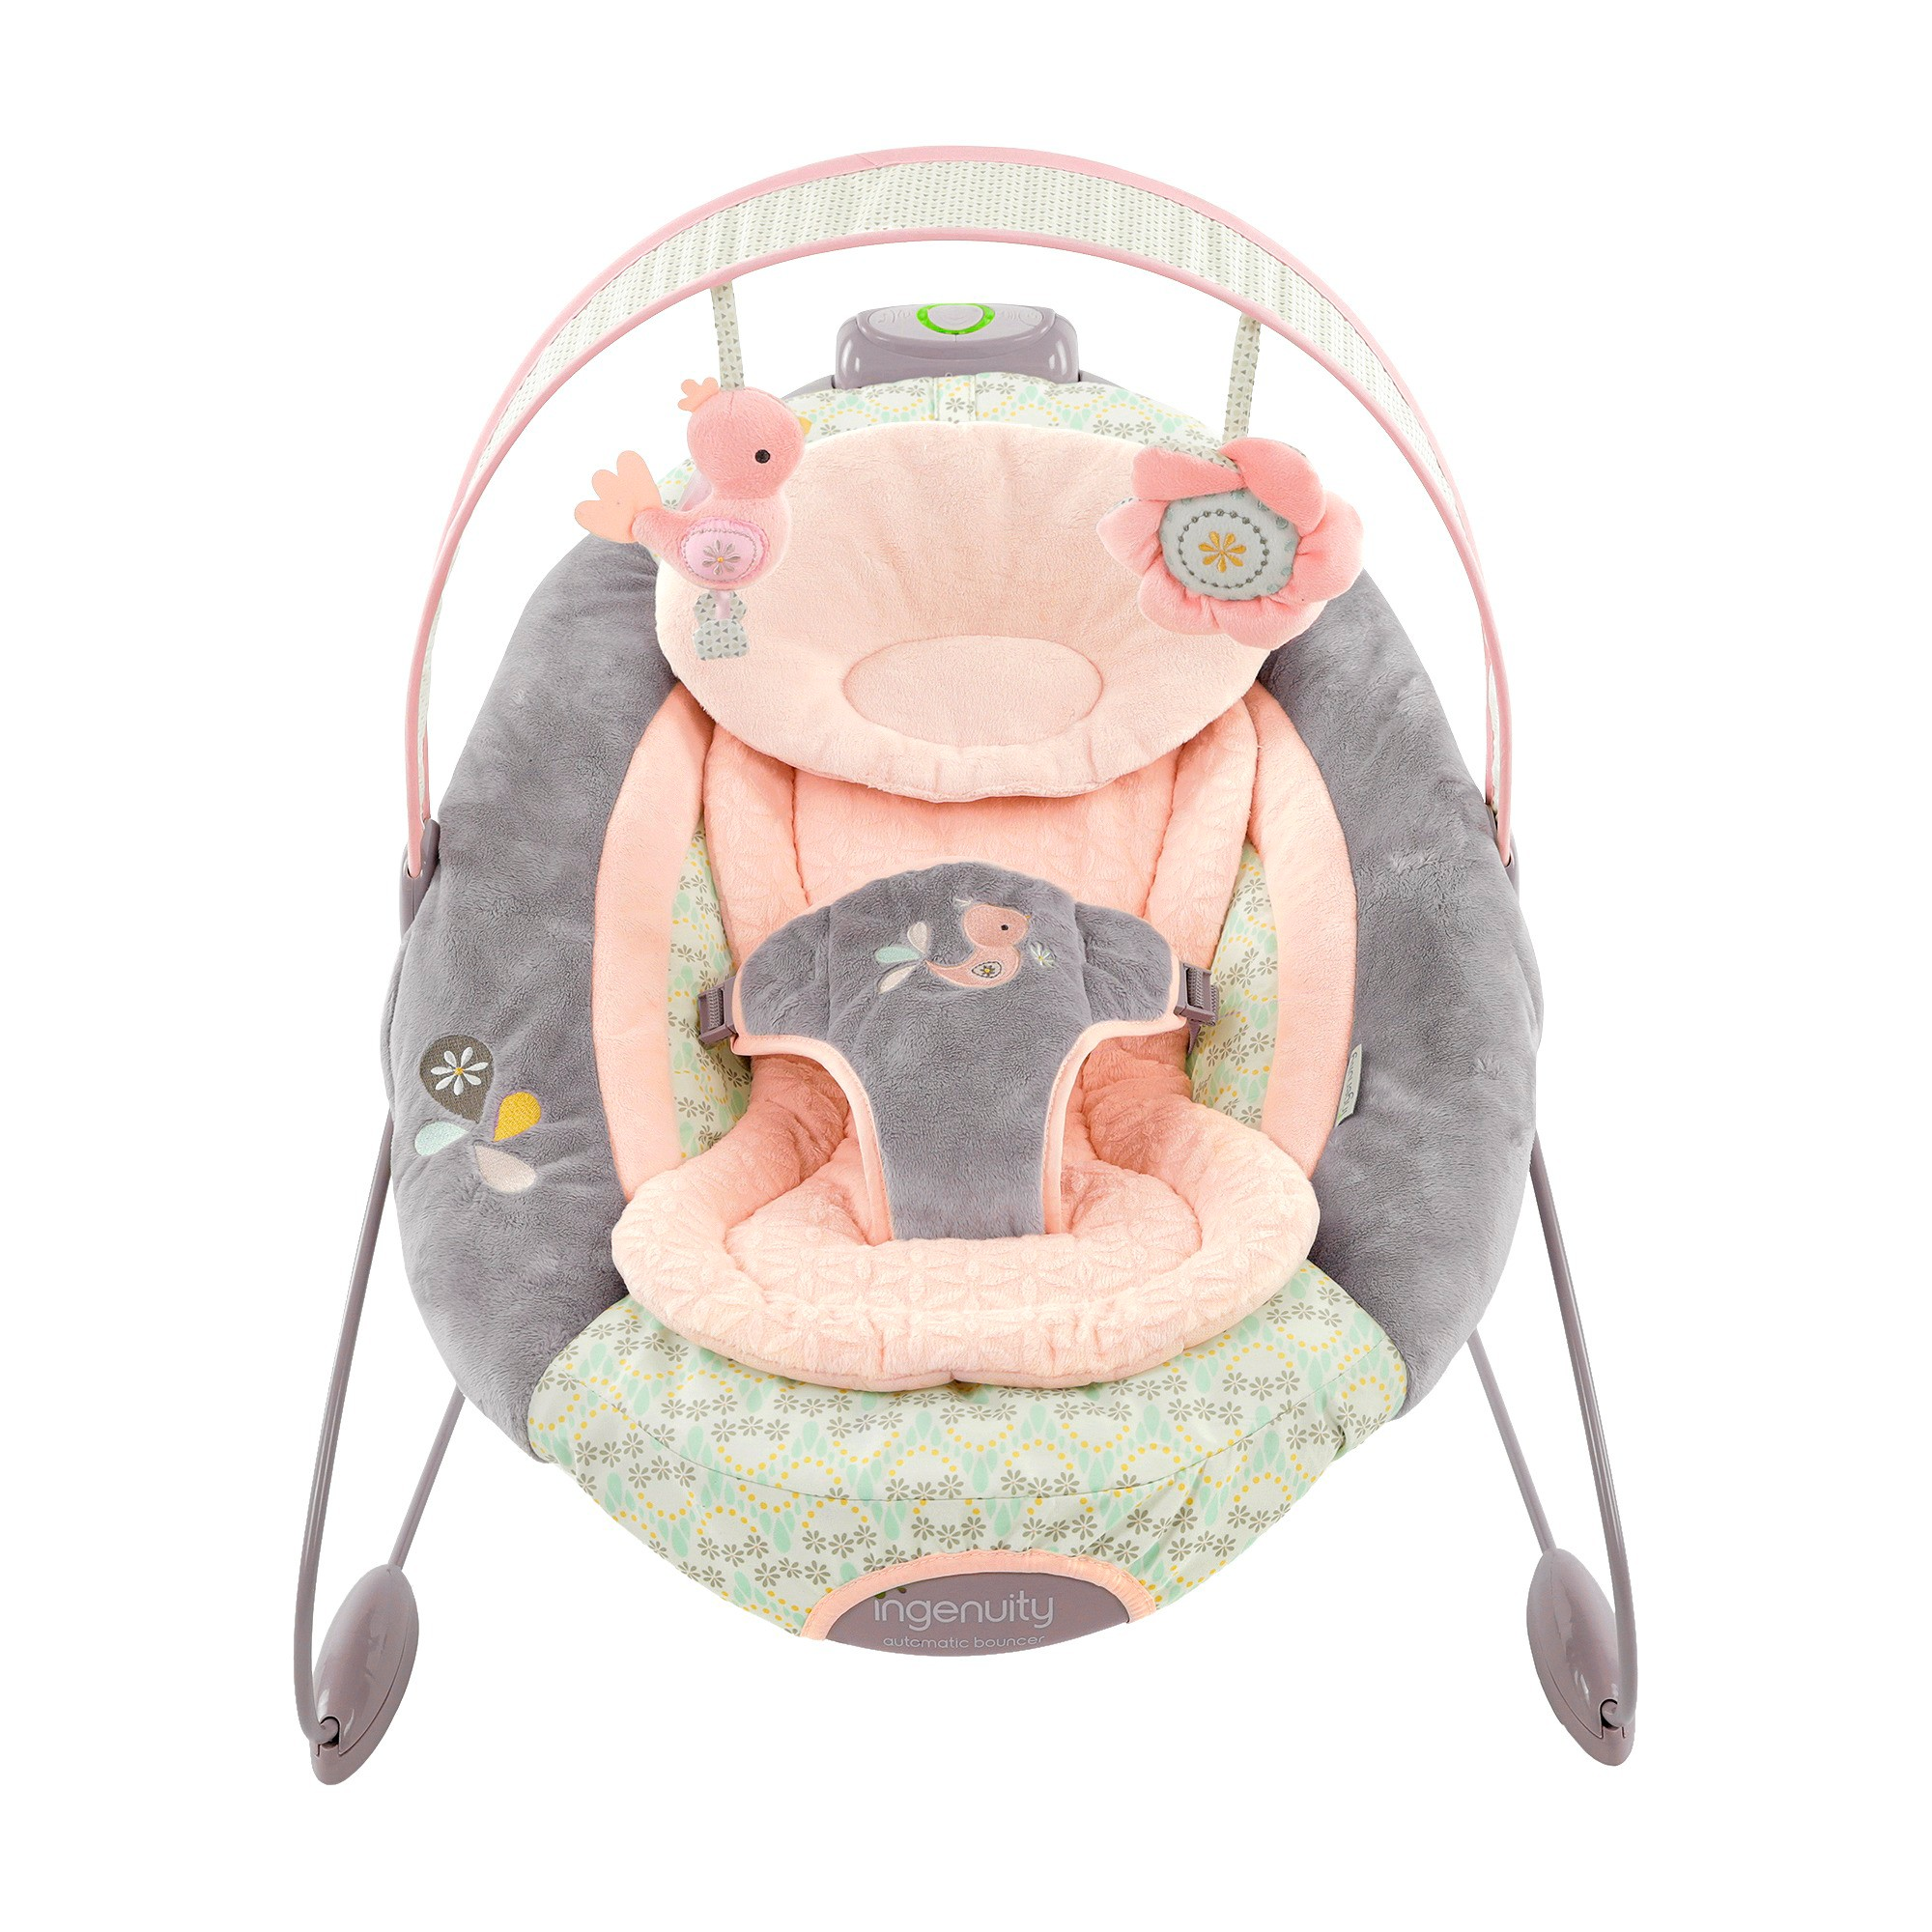 Ingenuity Smartbounce Automatic Bouncer Piper Pink Products